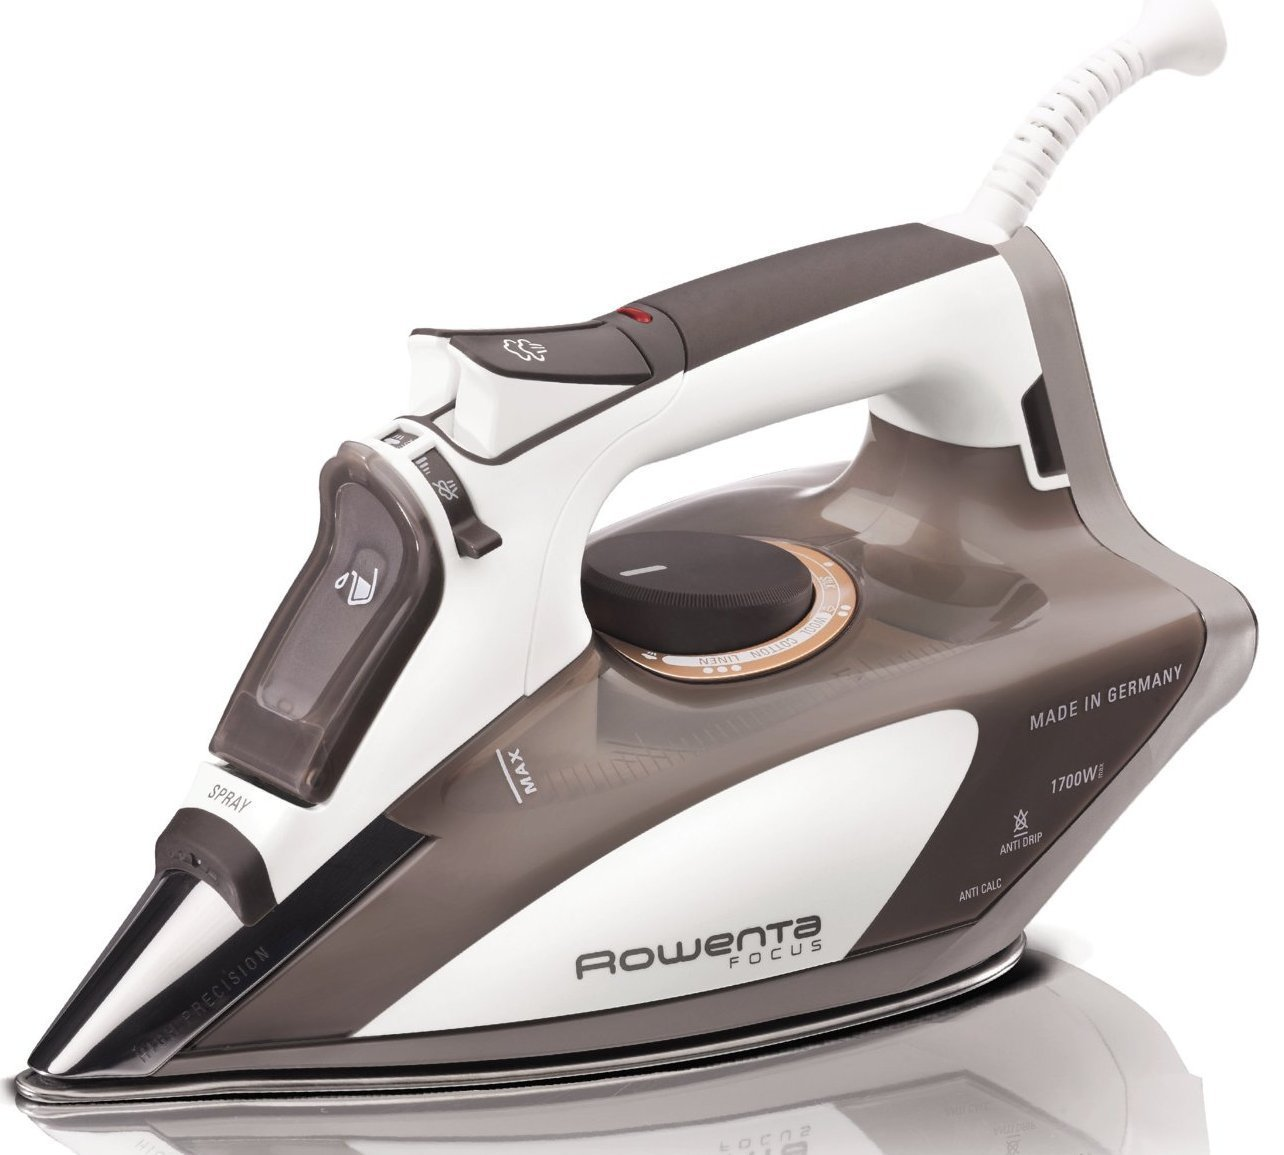 Rowenta DW5080 Focus 1700-Watt Micro Steam Iron Stainless Steel Soleplate with Auto-Off, 400-Hole, Brown 2-Pack